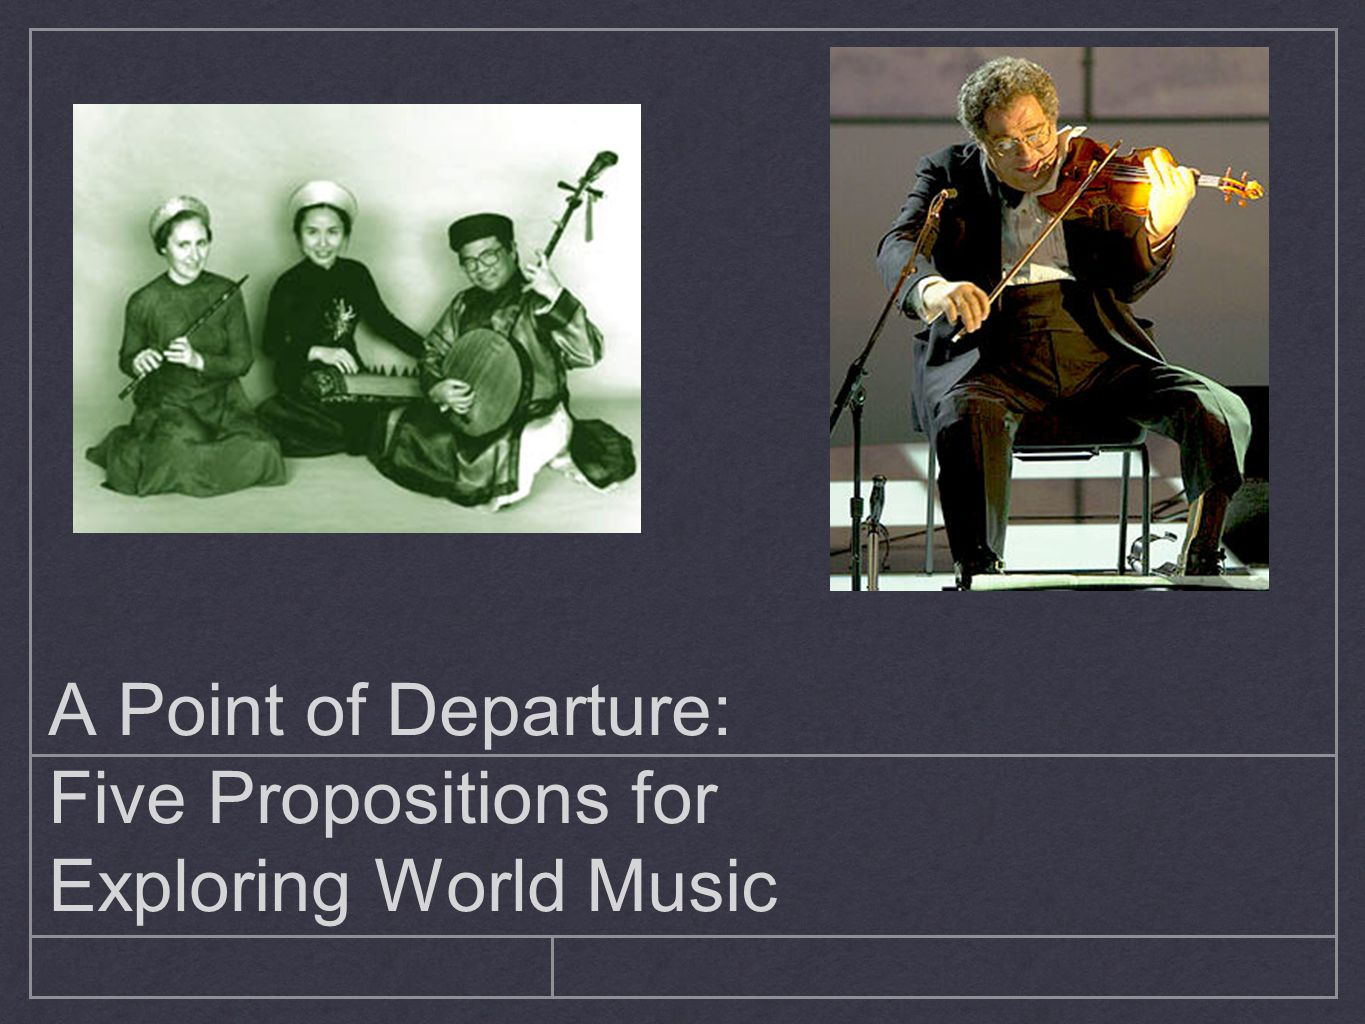 A Point of Departure: Five Propositions for Exploring World Music